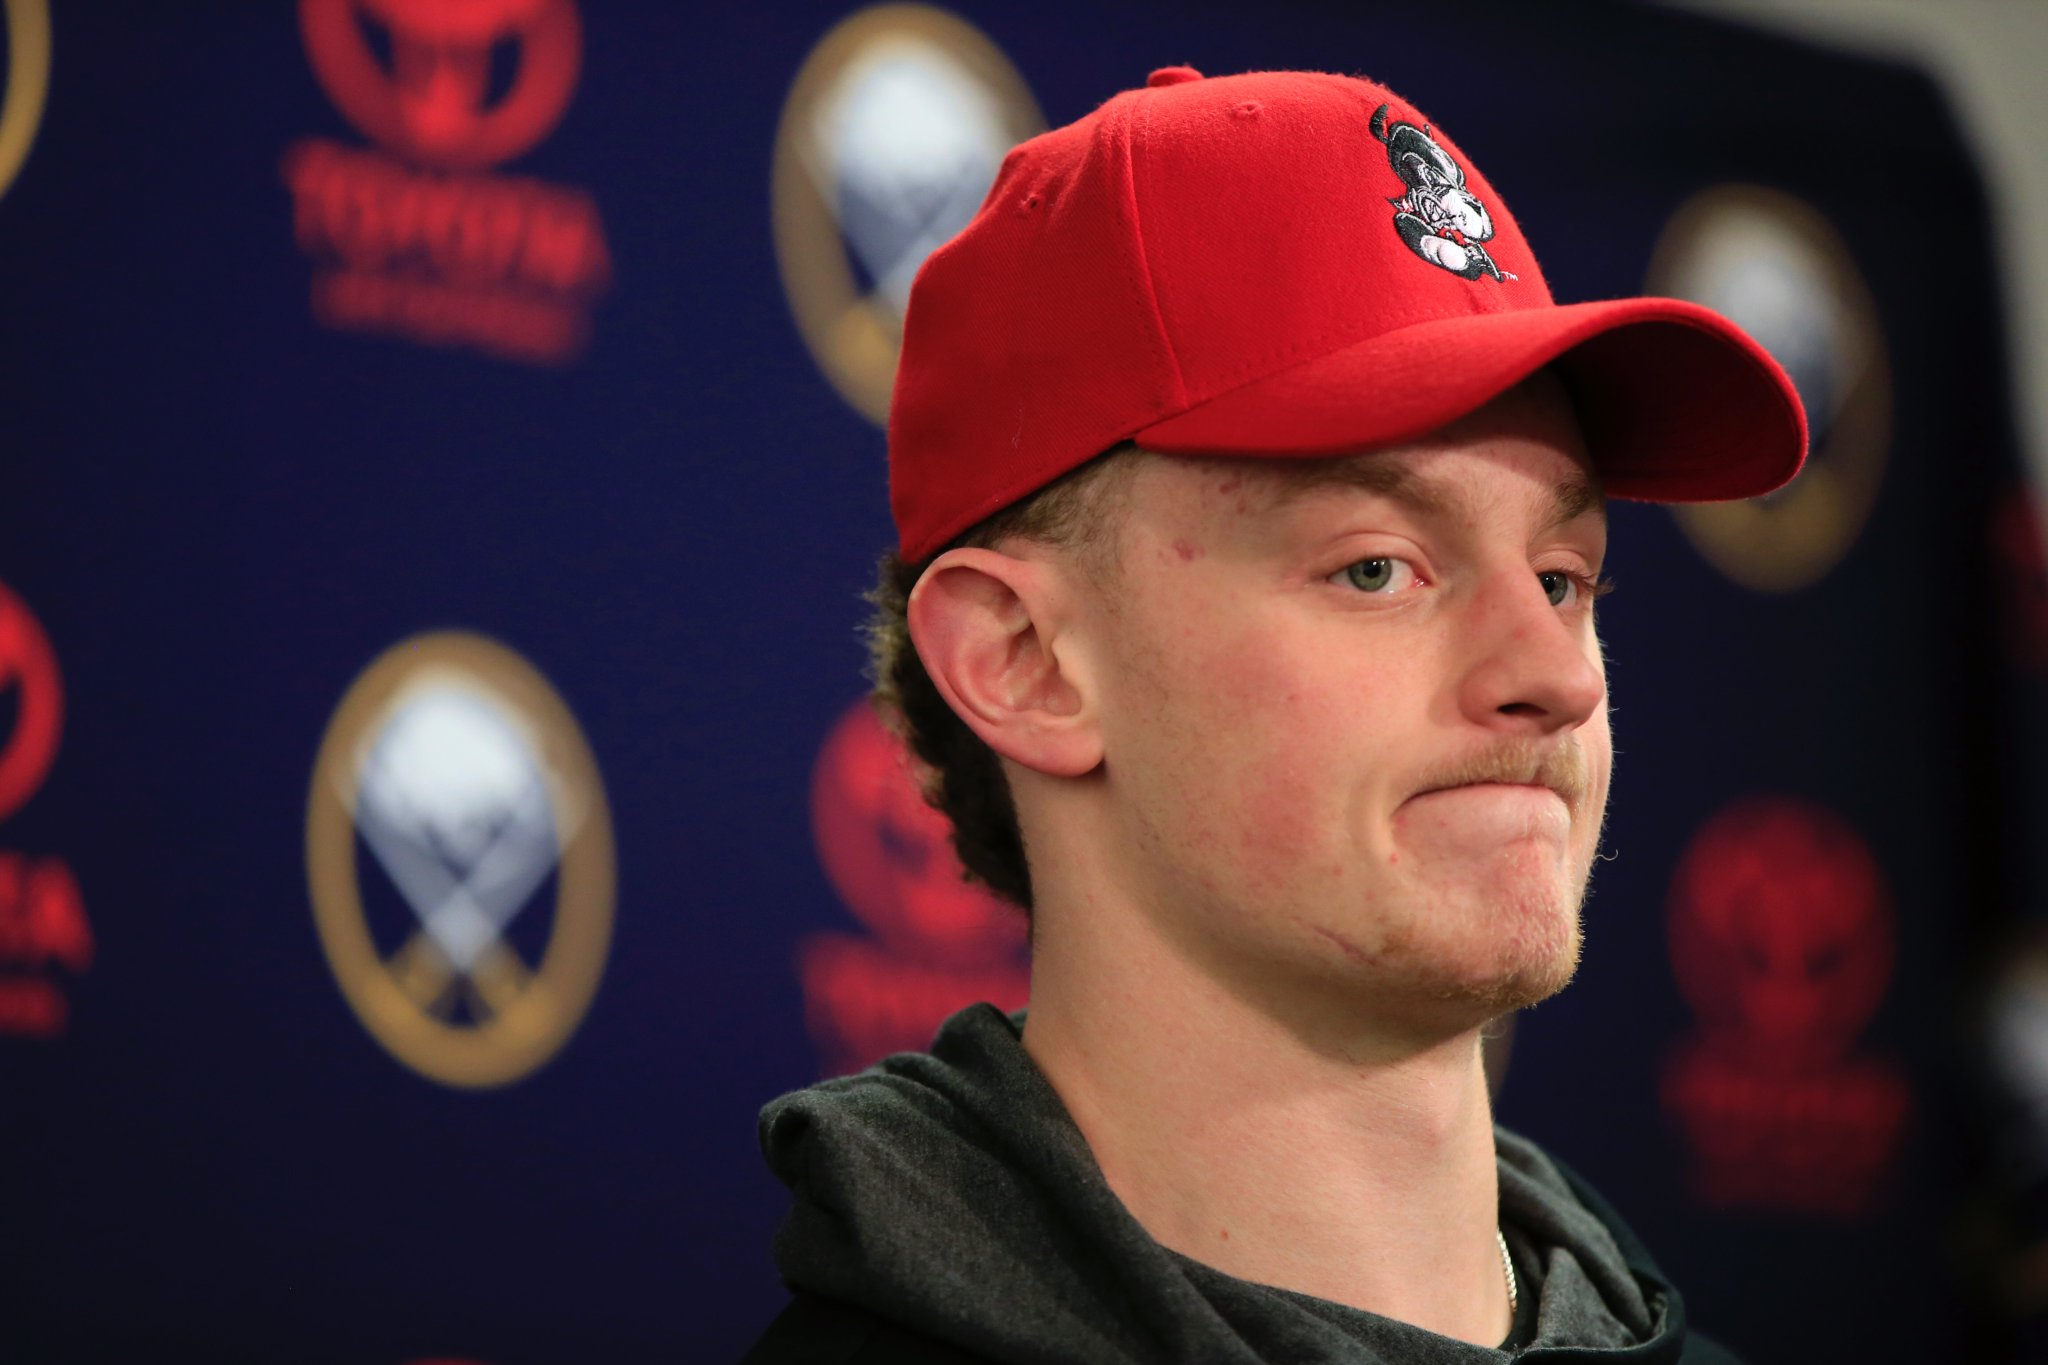 Jack Eichel's face summed up the Sabres' 2016-17 season during the team's locker cleanout day. (Harry Scull Jr./Buffalo News)